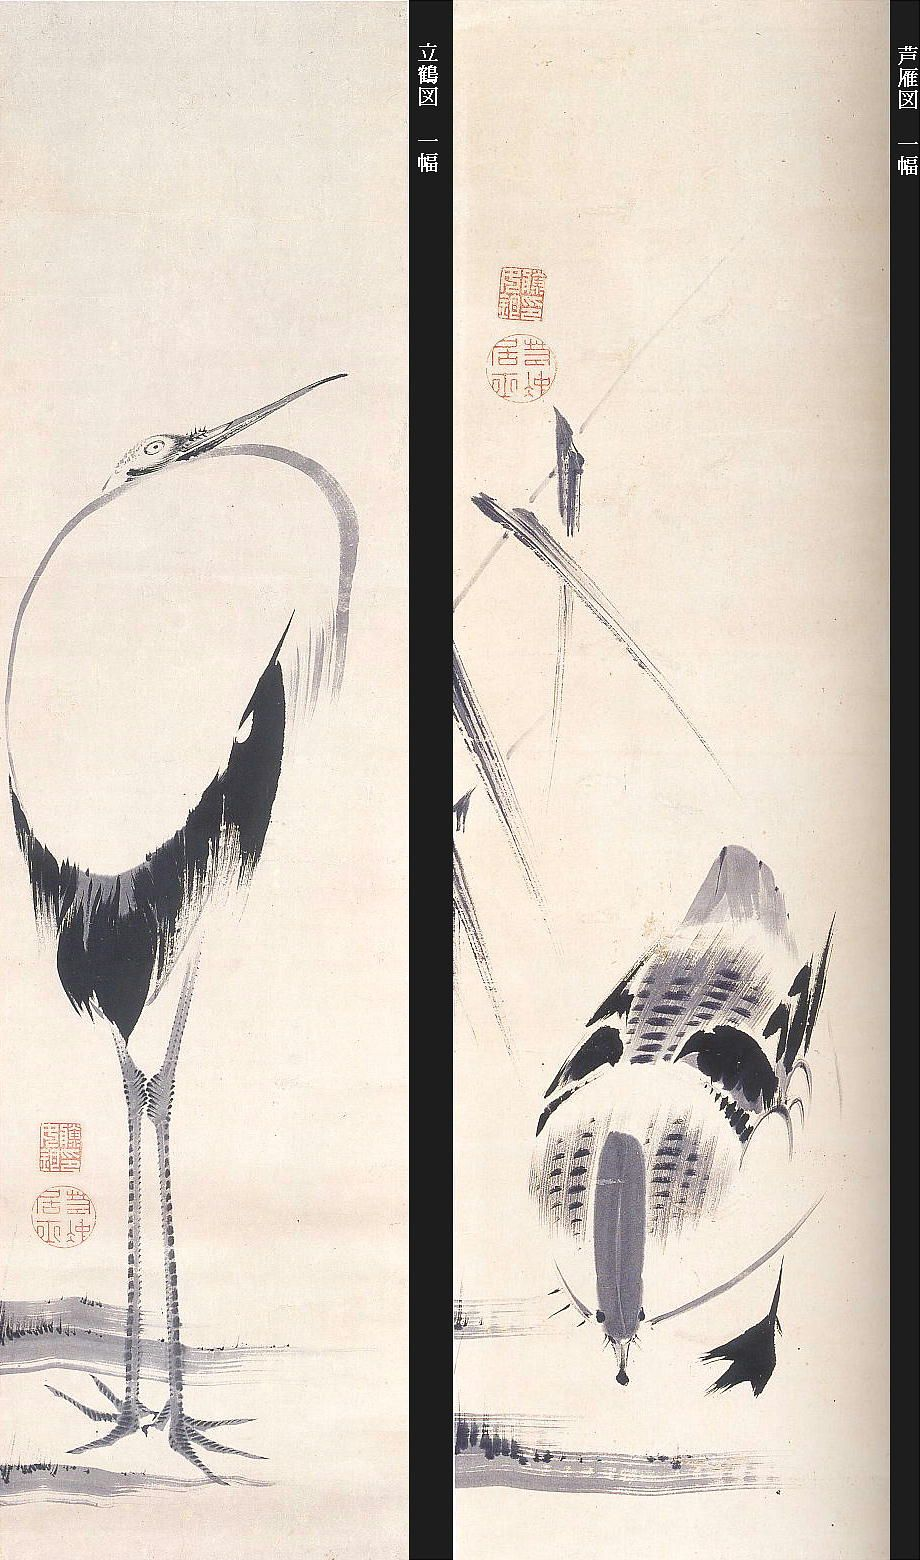 伊藤若冲 芦雁図 立鶴図. Crane and rooster. Japanese hanging scrolls. Ito Jakuchu. Eighteenth century